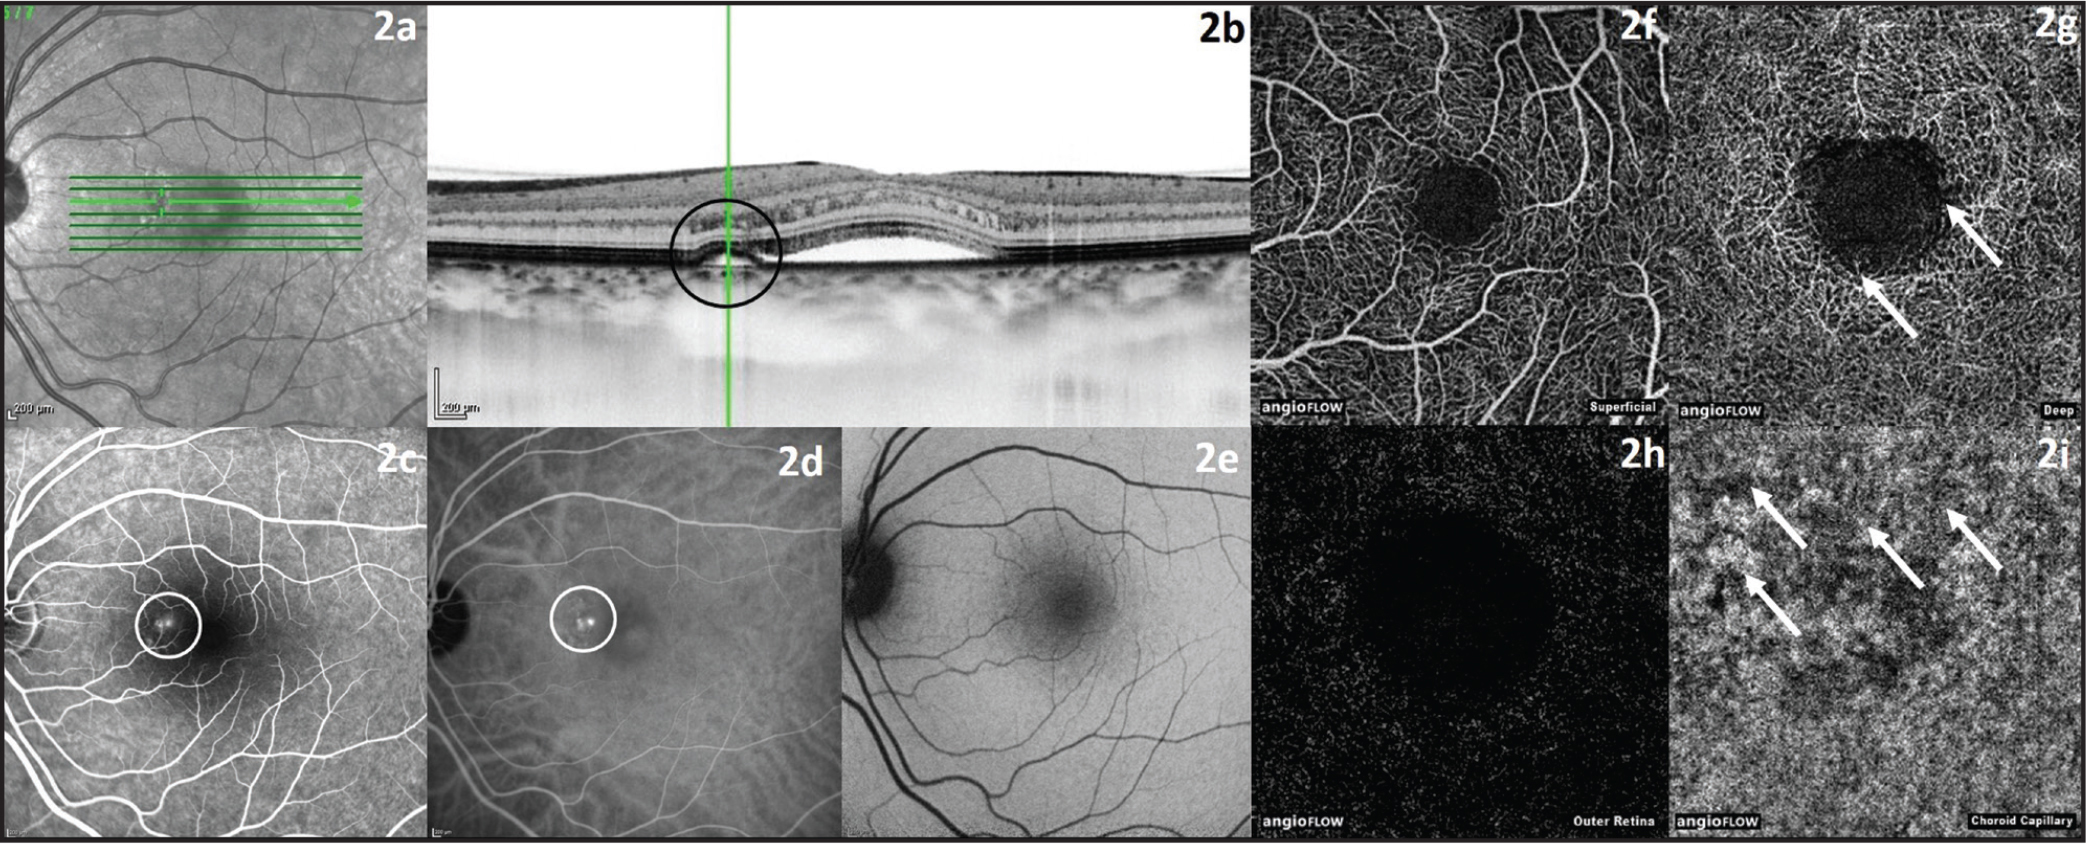 Left eye of a 39-year-old female patient with acute central serous chorioretinopathy. (A, B) Infrared and optical coherence tomography (OCT) image showing retinal detachment and detachment of retinal pigment epithelium. (C) Fluorescein angiography image with leakage point (white circle). (D) Indocyanine green angiography image with leakage point (white circle). (E) Fundus autofluorescence image. (F) OCT angiography (OCTA) image of superficial retinal vessels. (G) OCTA image of deep retinal vessels with rarefication of vessels and discernable area with detached retina (white arrows). (H) OCTA image of outer retina. (I) OCTA image of choroid capillaries with abnormal flow pattern (white arrows).